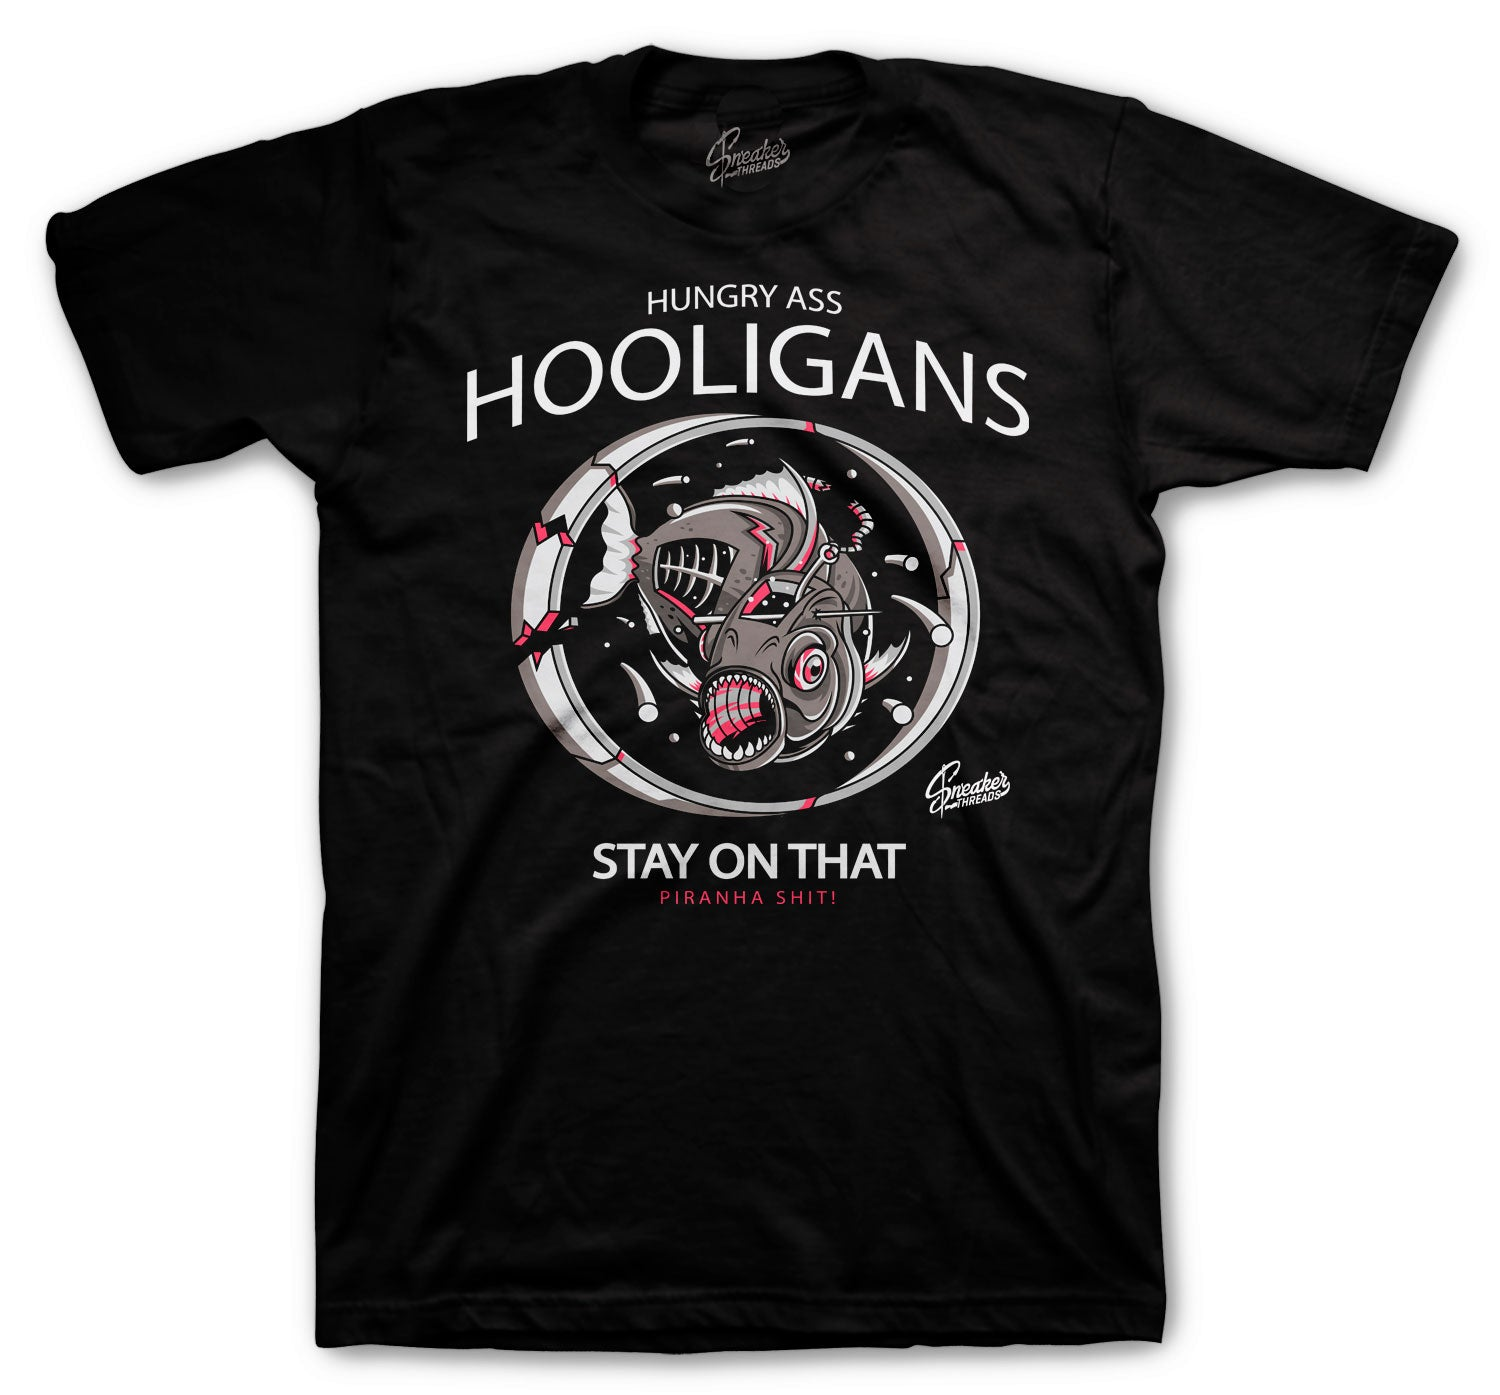 Jordan 4 Taupe Haze Shirt - Hooligans - Black